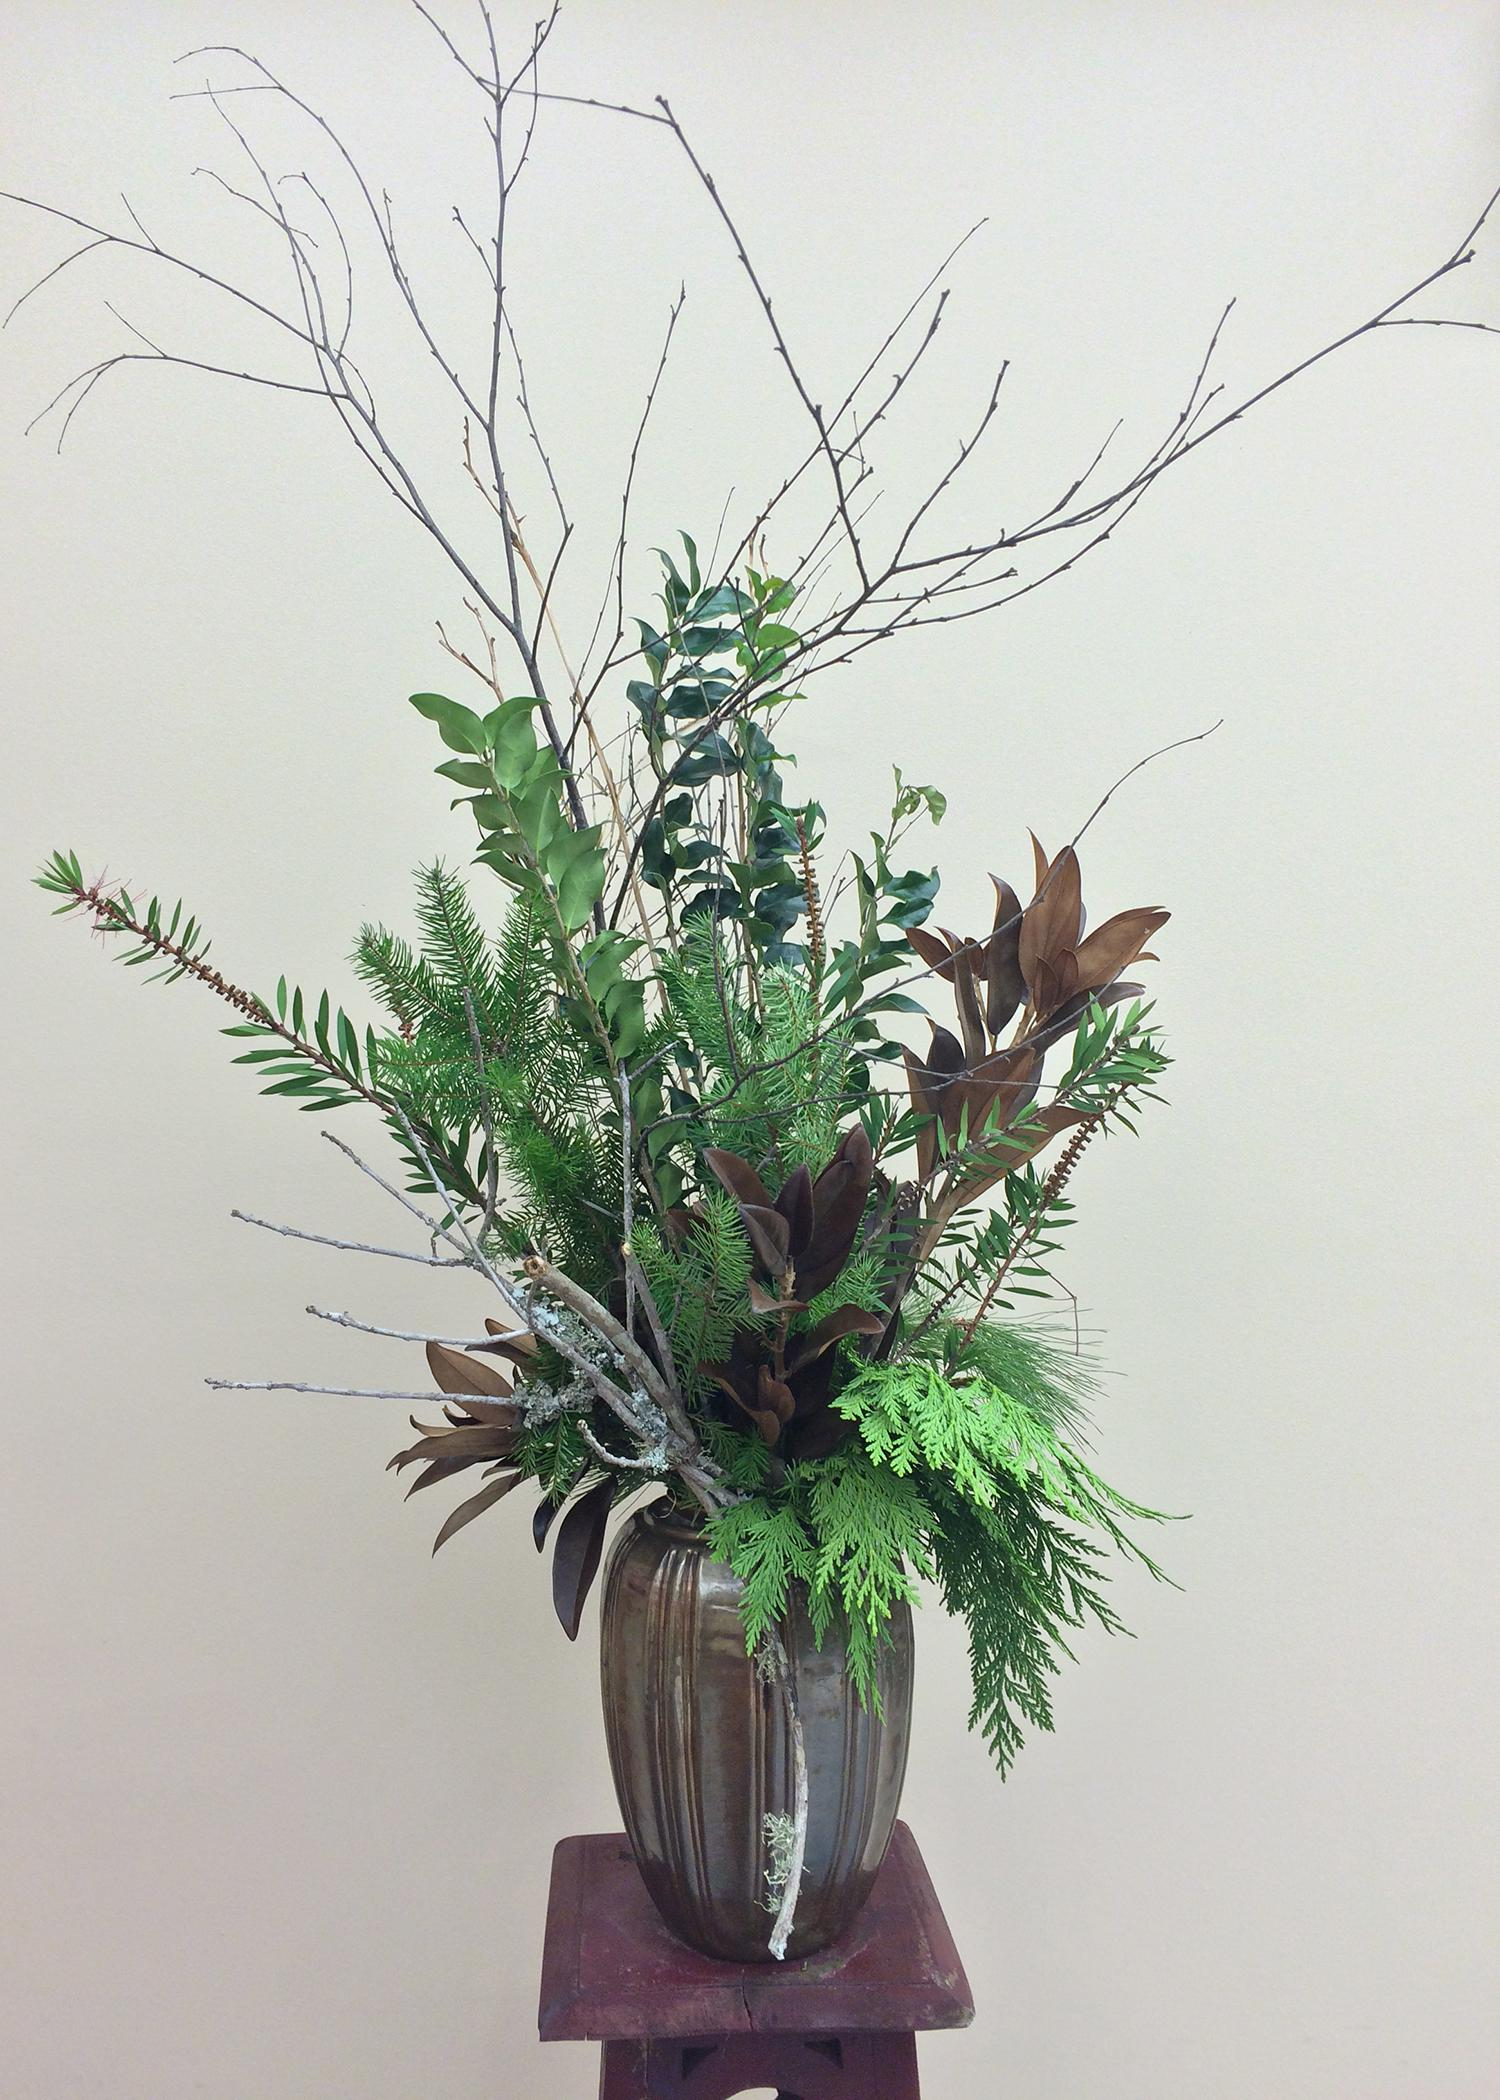 Participants can learn to create floral arrangements such as this design with native Mississippi foliage at one of four demonstrations offered by the Mississippi State University Extension Service statewide Feb. 15-18. (Photo by MSU Extension Service/Jim DelPrince)